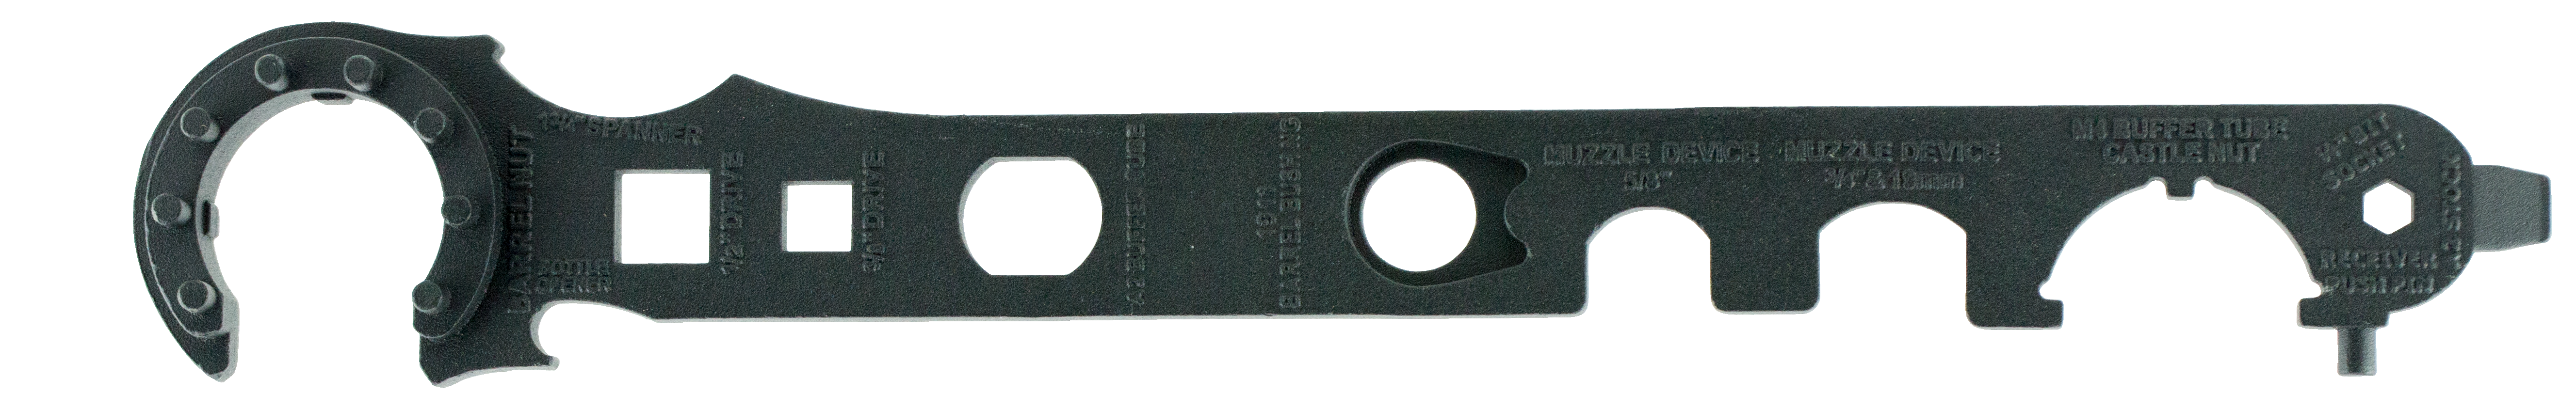 NCStar TARW2 Armorer's Barrel Wrench